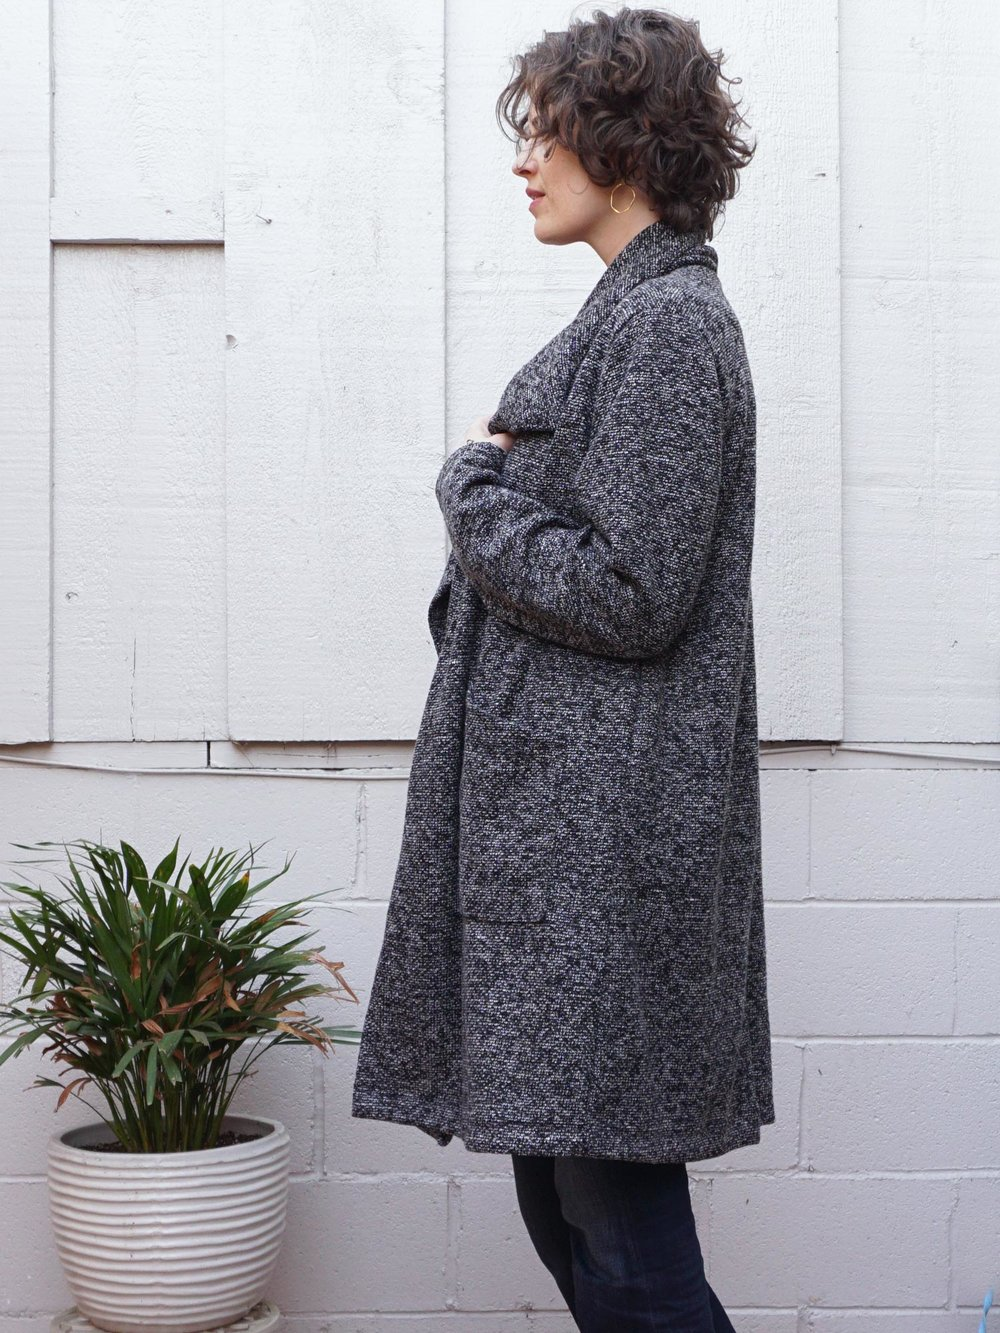 DIY Boucle Coatigan – Review of the Jill Coat by Seamwork